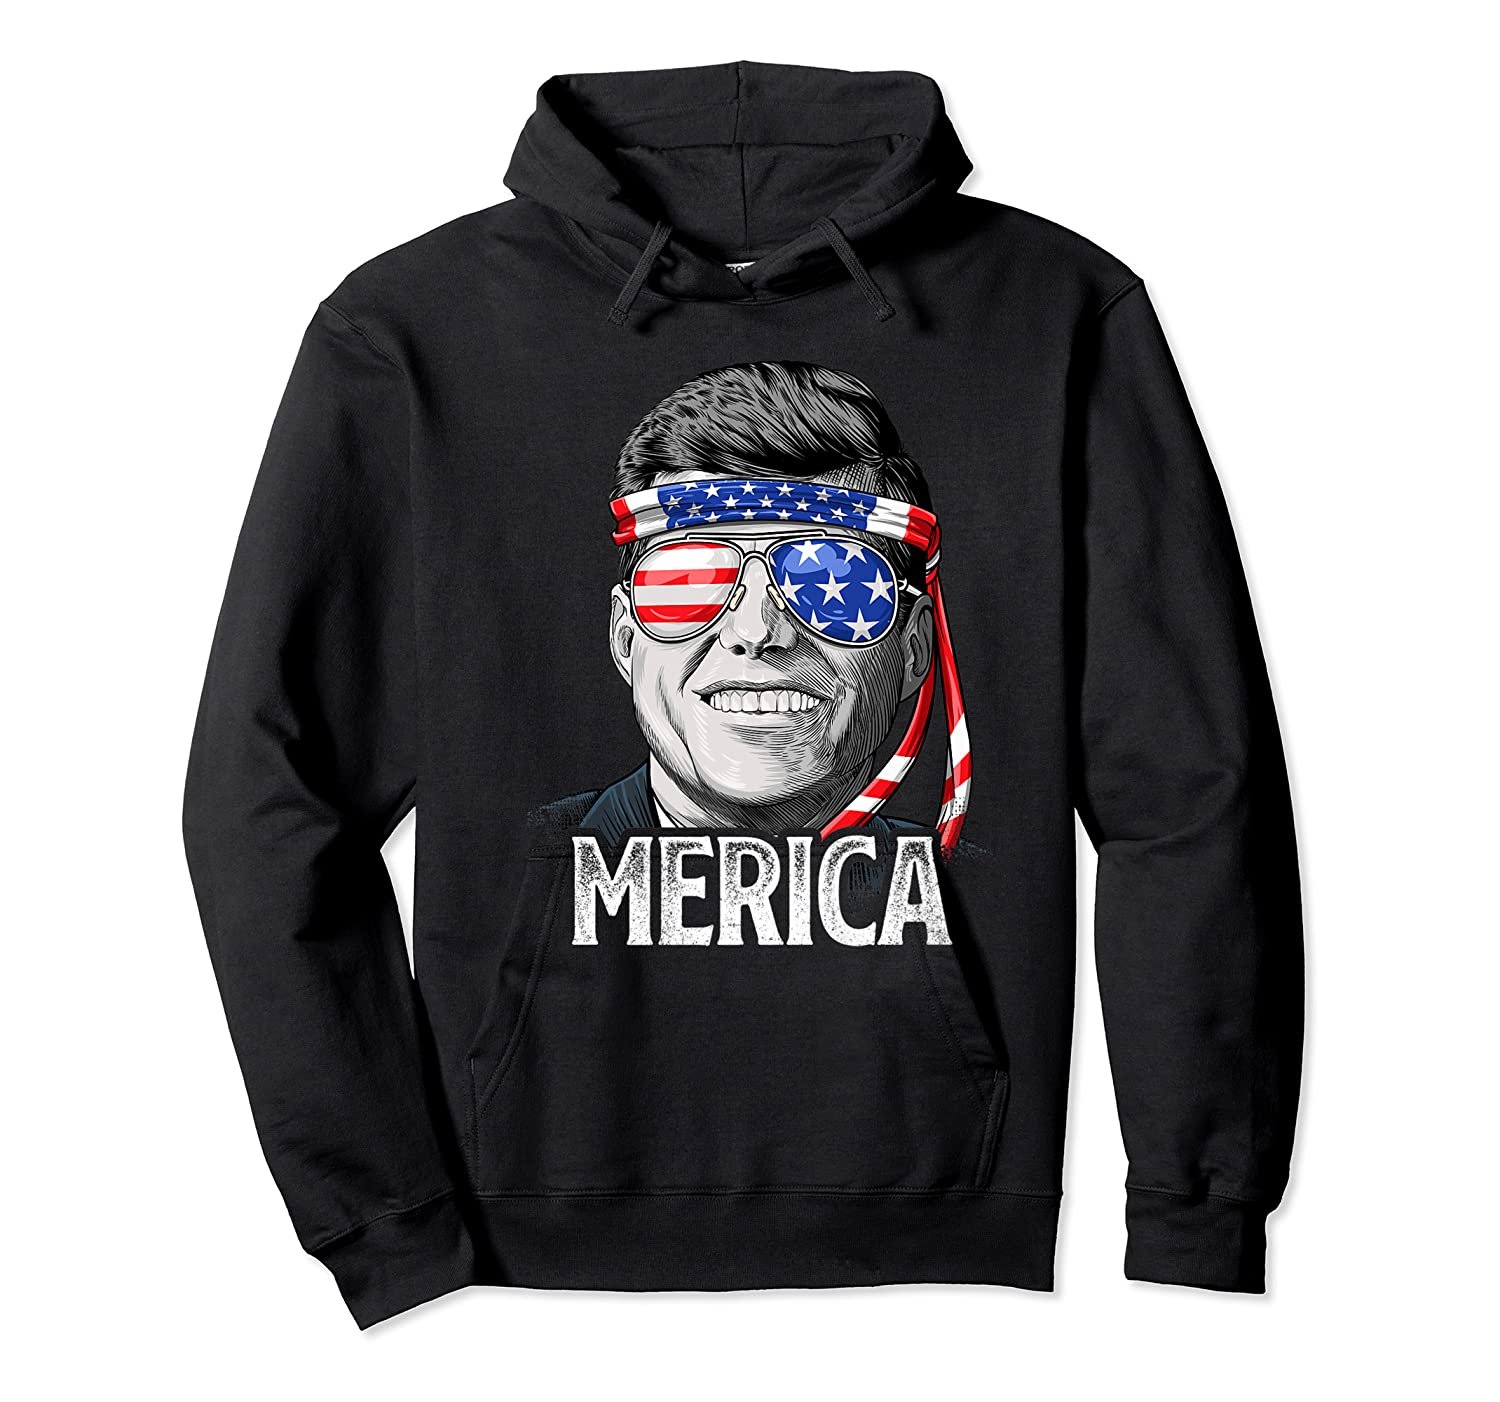 Kennedy Merica 4th Of July President Jfk Gifts Shirts Unisex Pullover Hoodie